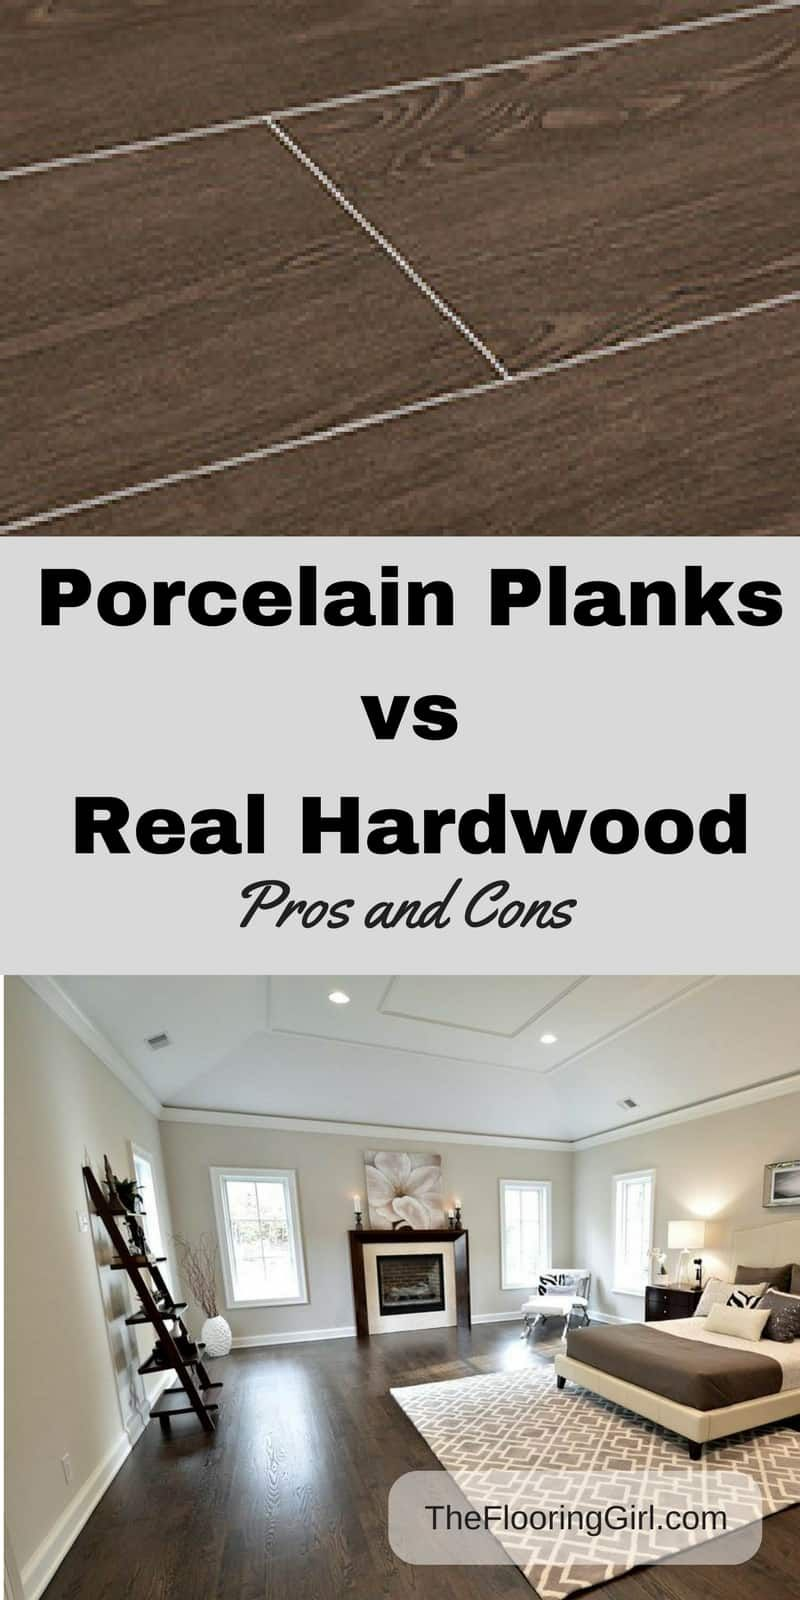 25 Stone Flooring Ideas With Pros And Cons: Solid Hardwood Vs Porcelain Tiles That Look Like Wood